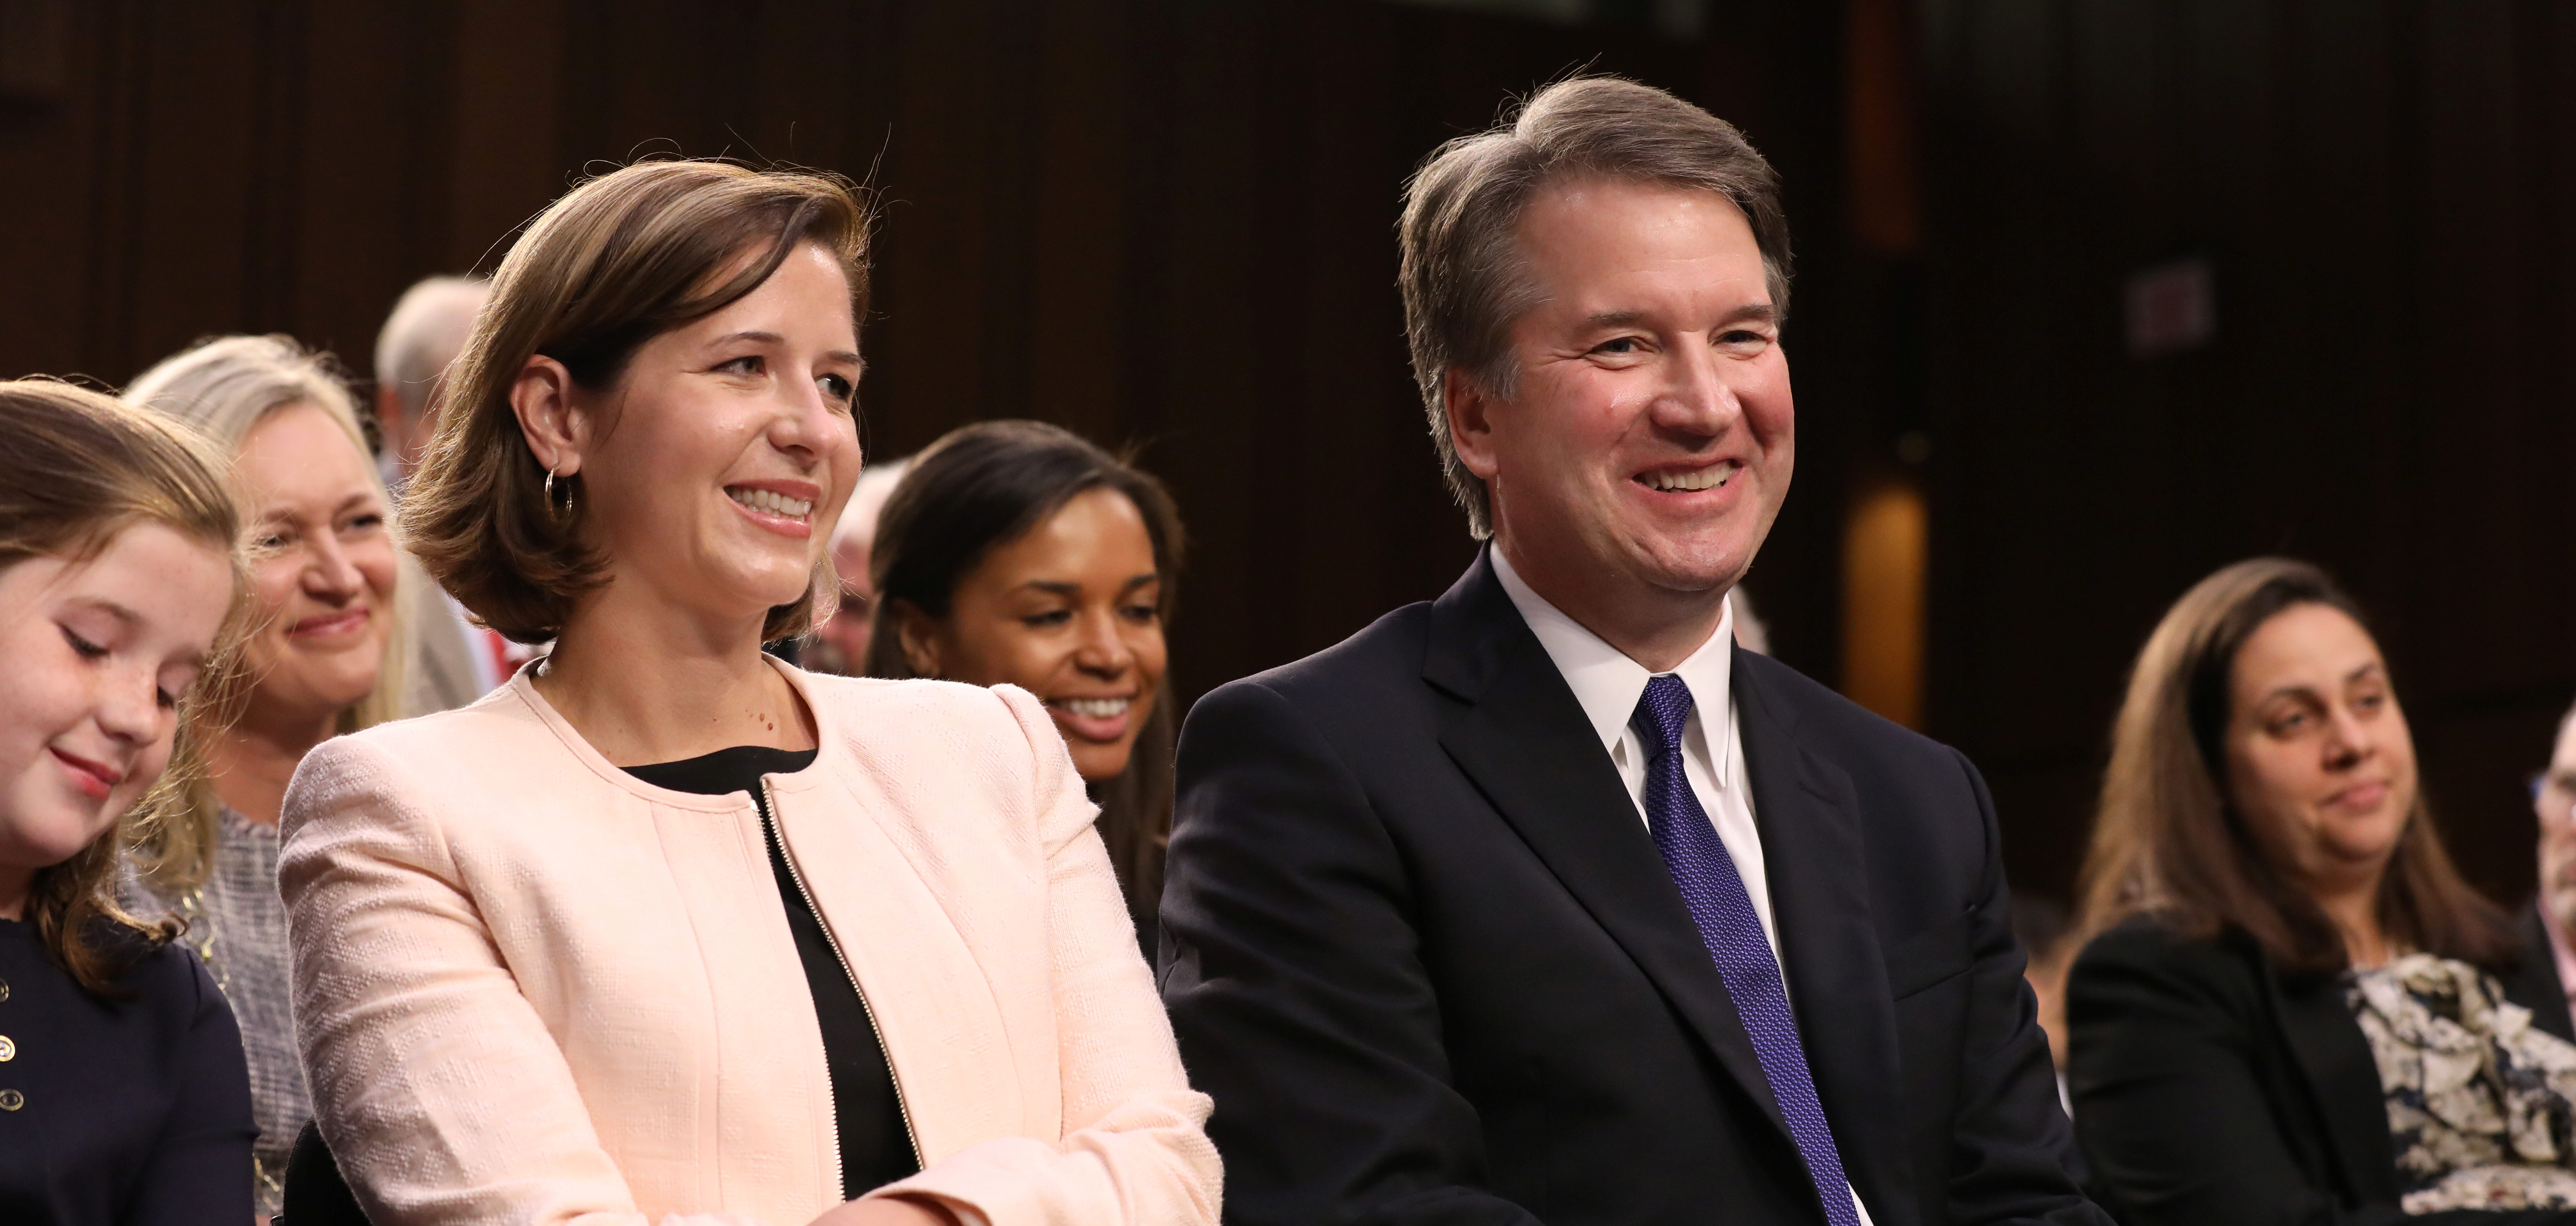 U.S. Supreme Court nominee judge Brett Kavanaugh sits with his wife Ashley Estes Kavanaugh as they listen to his introductions at his Senate Judiciary Committee confirmation hearing on Capitol Hill in Washington, U.S., September 4, 2018. REUTERS/Chris Wattie